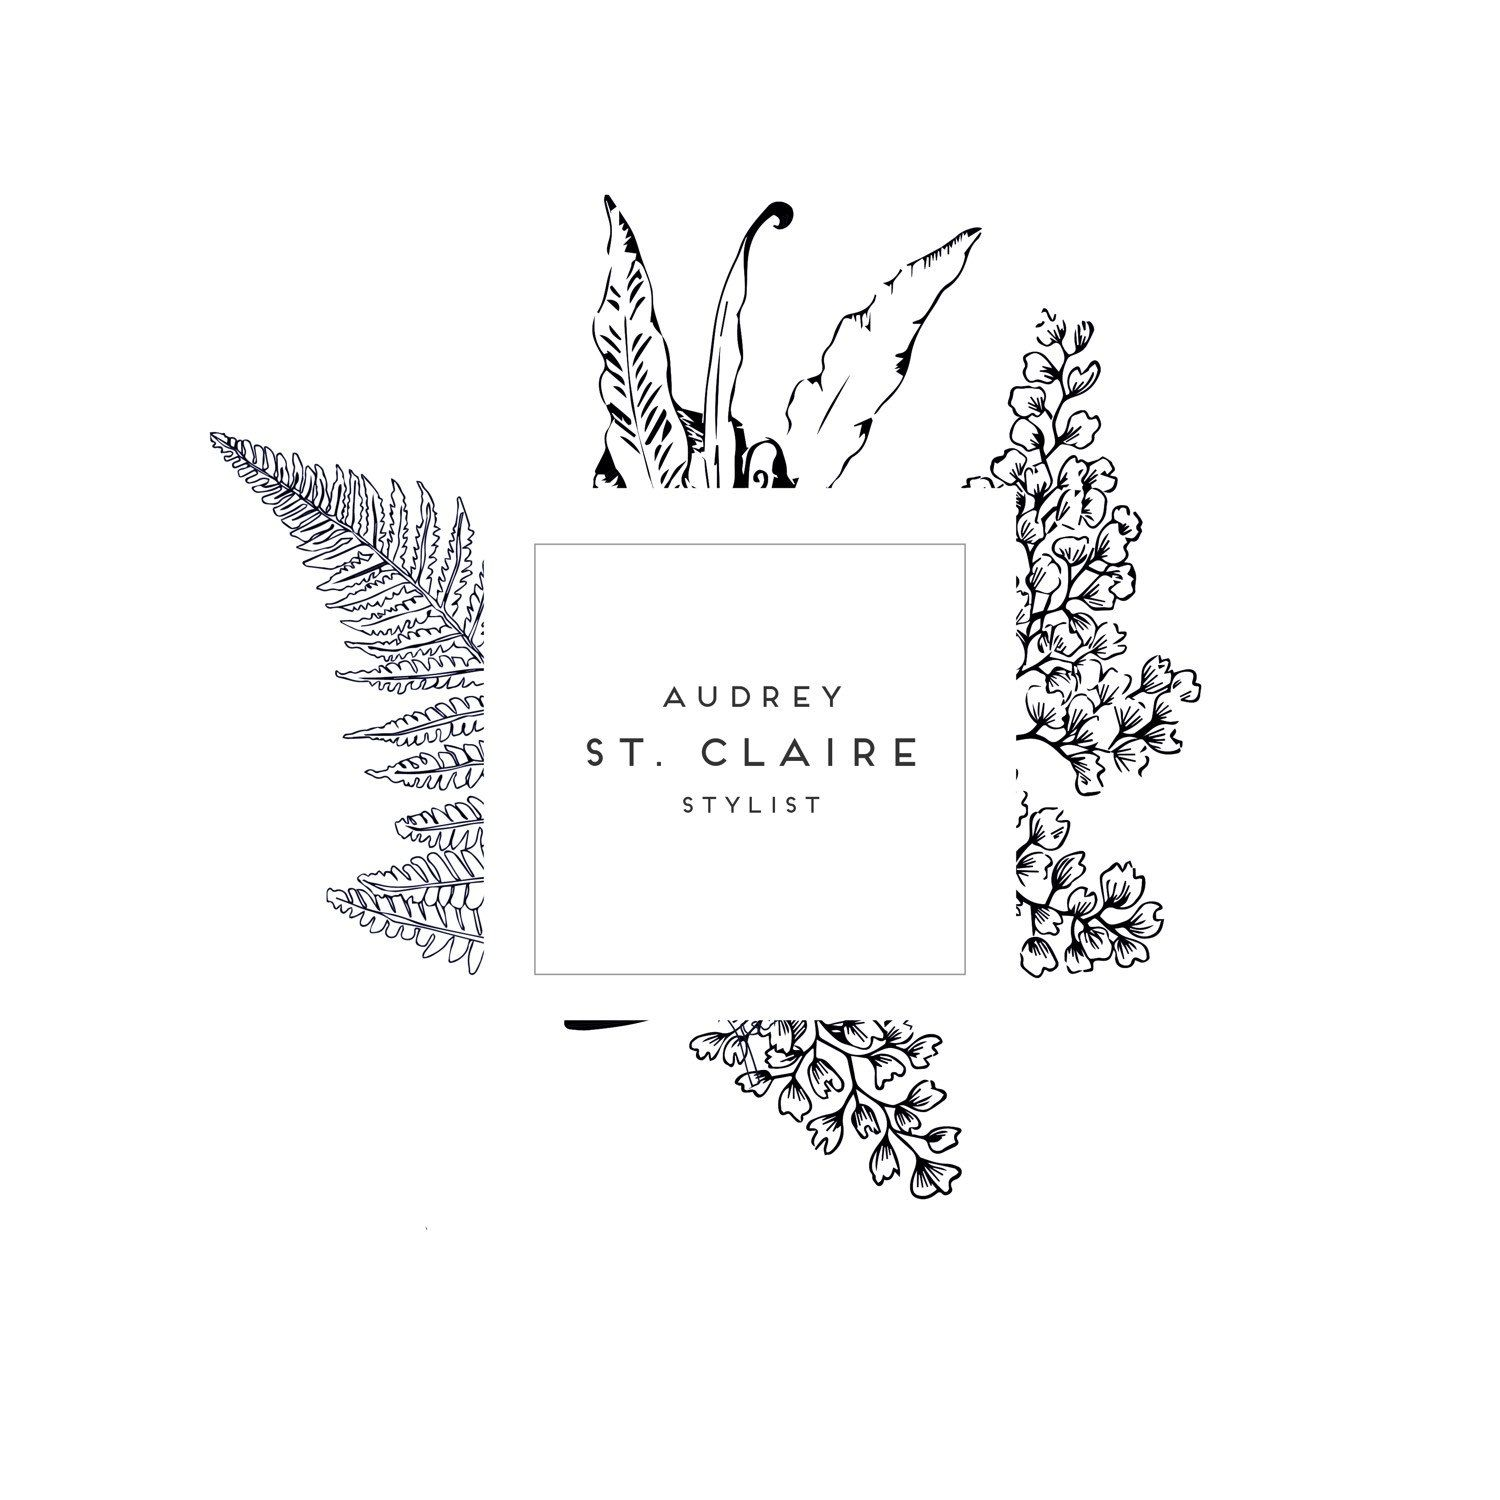 Bring a botanical accent to your branding graphic design